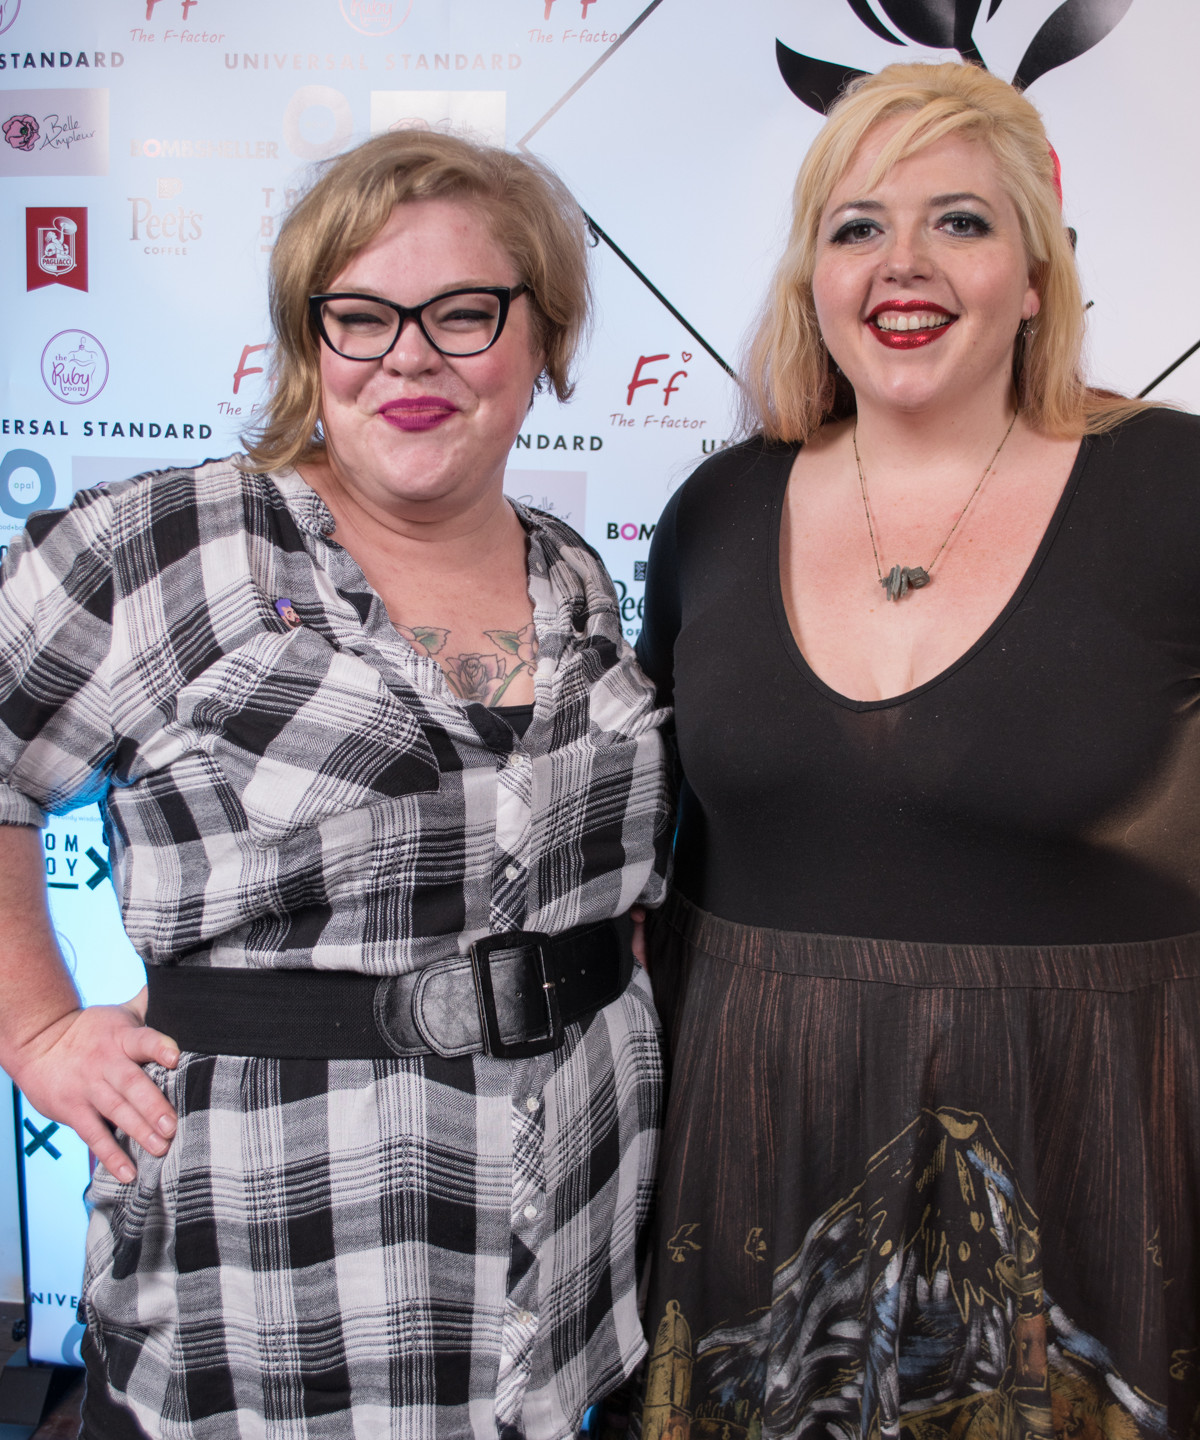 Jes of The Militant Baker and Bevin of Queer Fat Femme (and our Femmecee) pose for our step and repeat